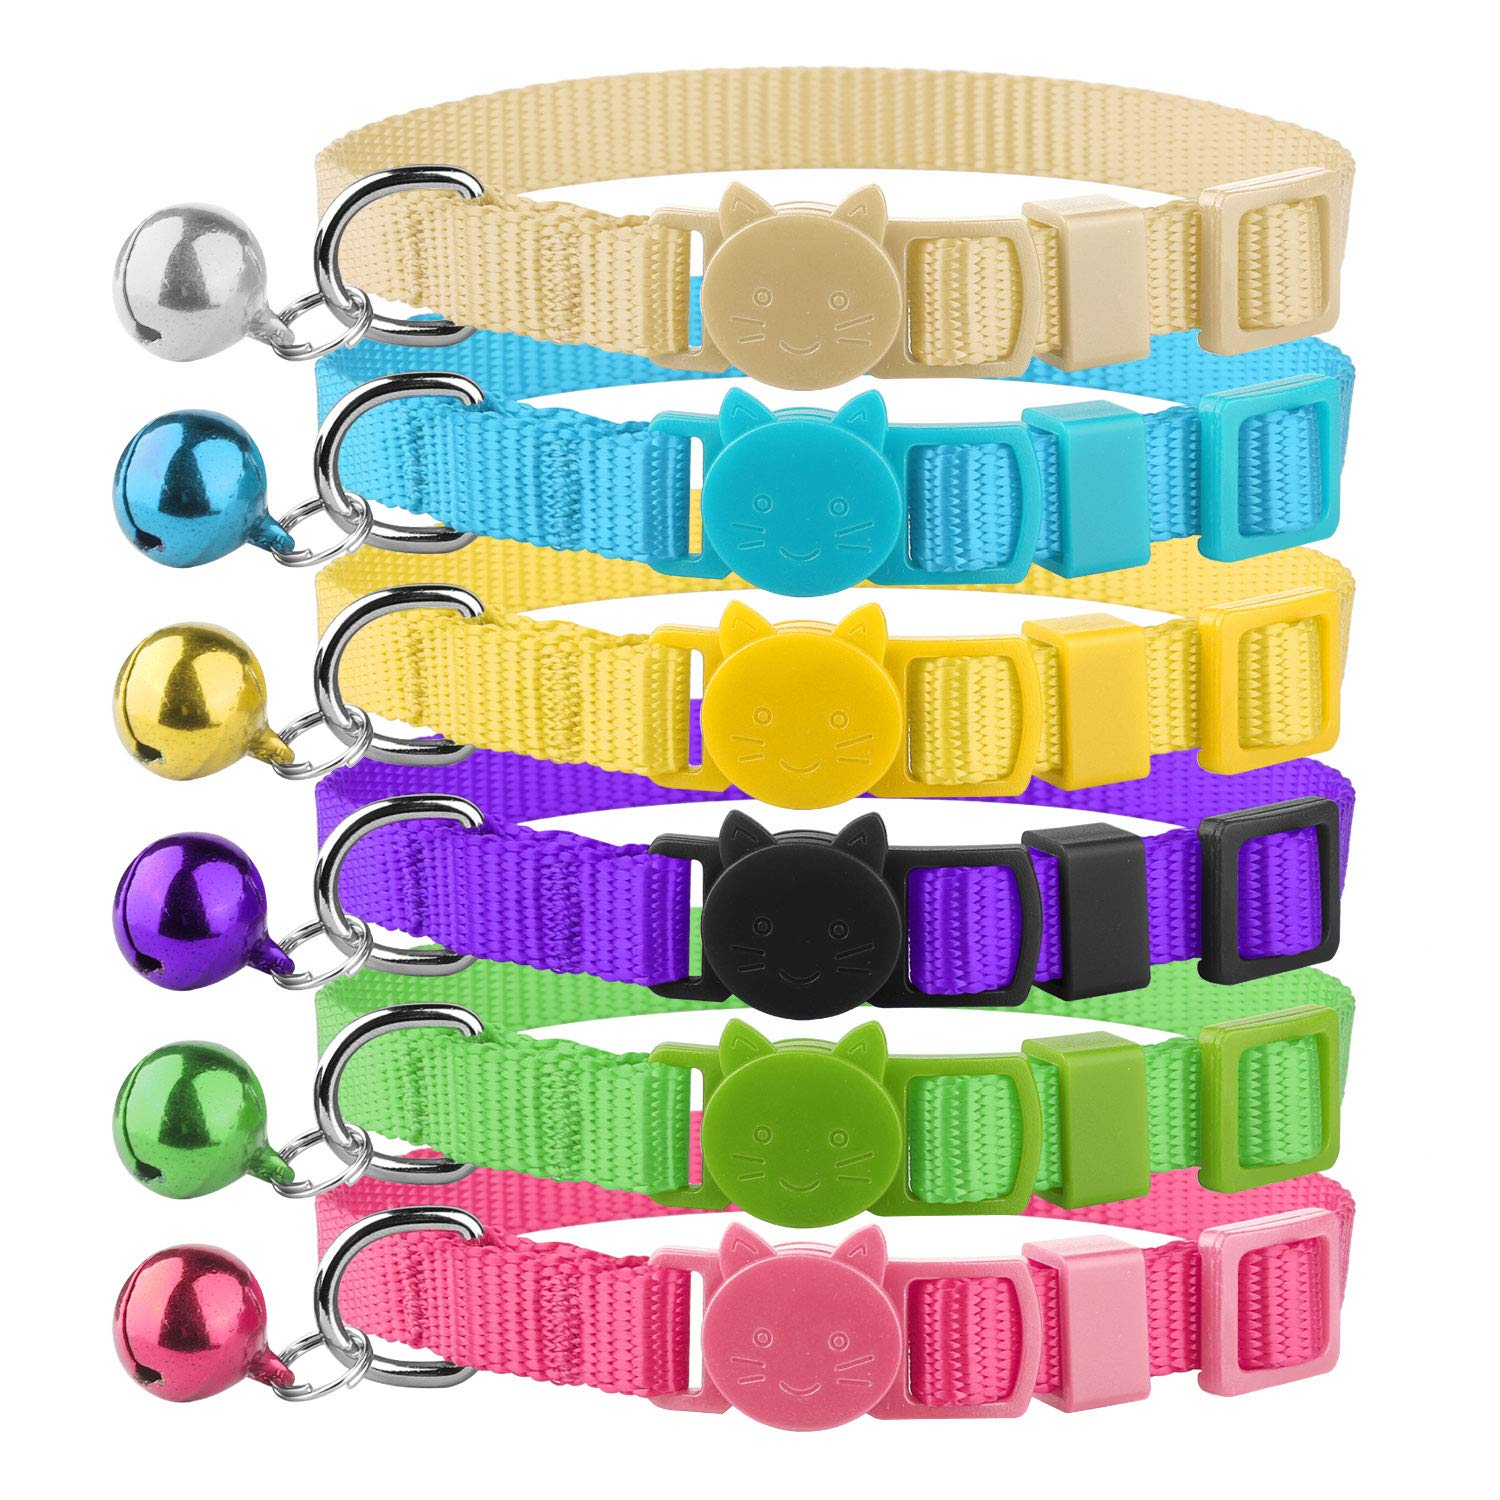 Blaoicni Cat Collars Nylon Soft Colorful Adjustable Breakaway Safety Kitten Collars with Bell 6pcs/Set by Blaoicni